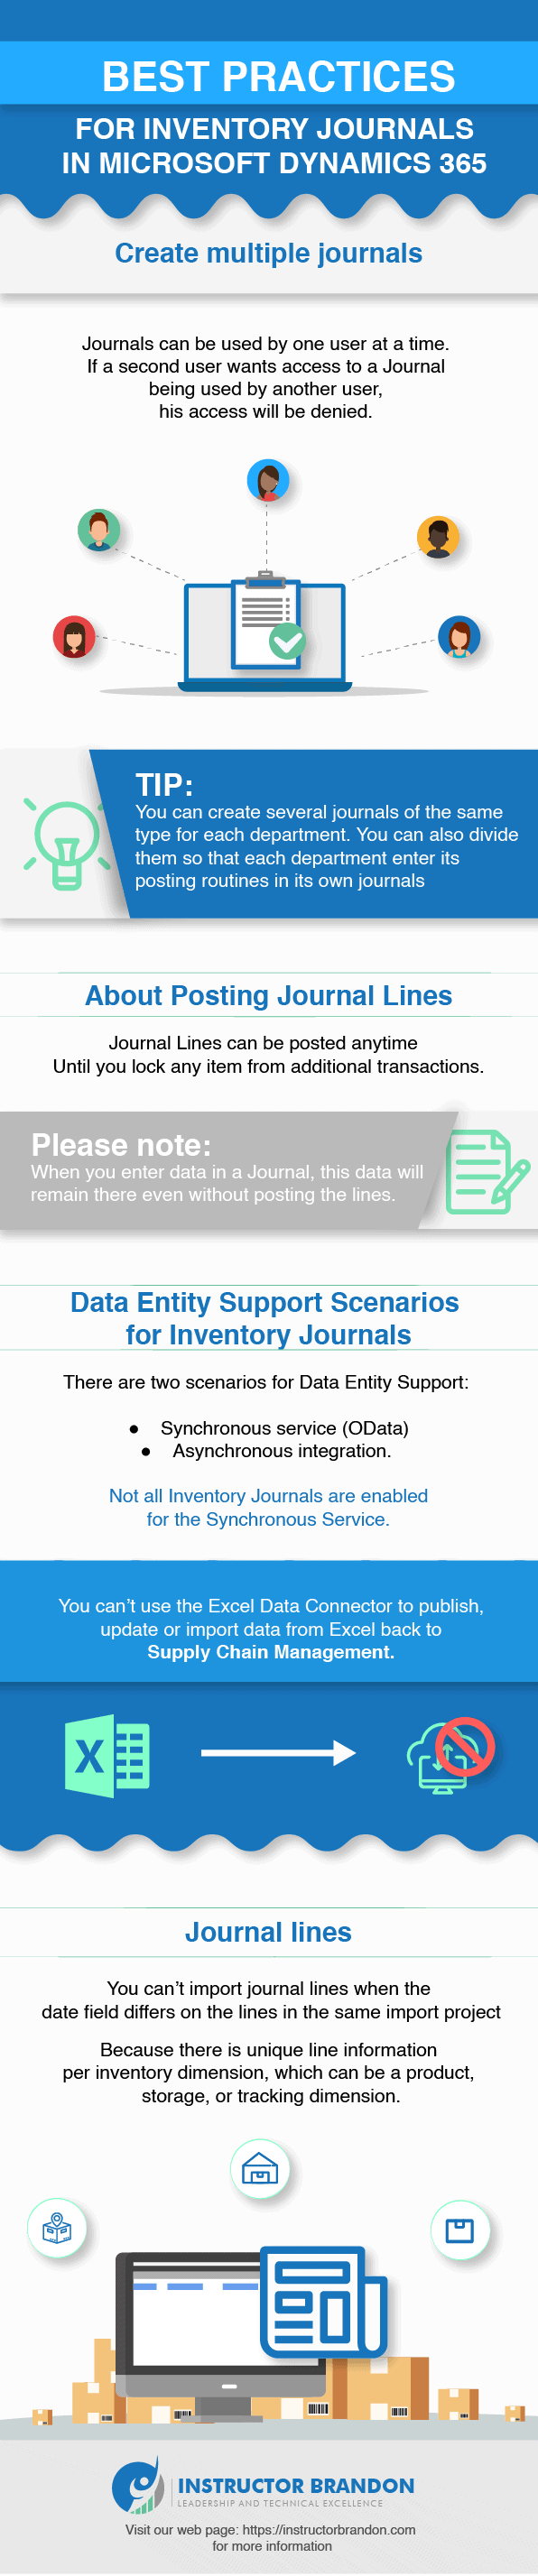 Best Practices for Inventory Journals in Dynamics 365